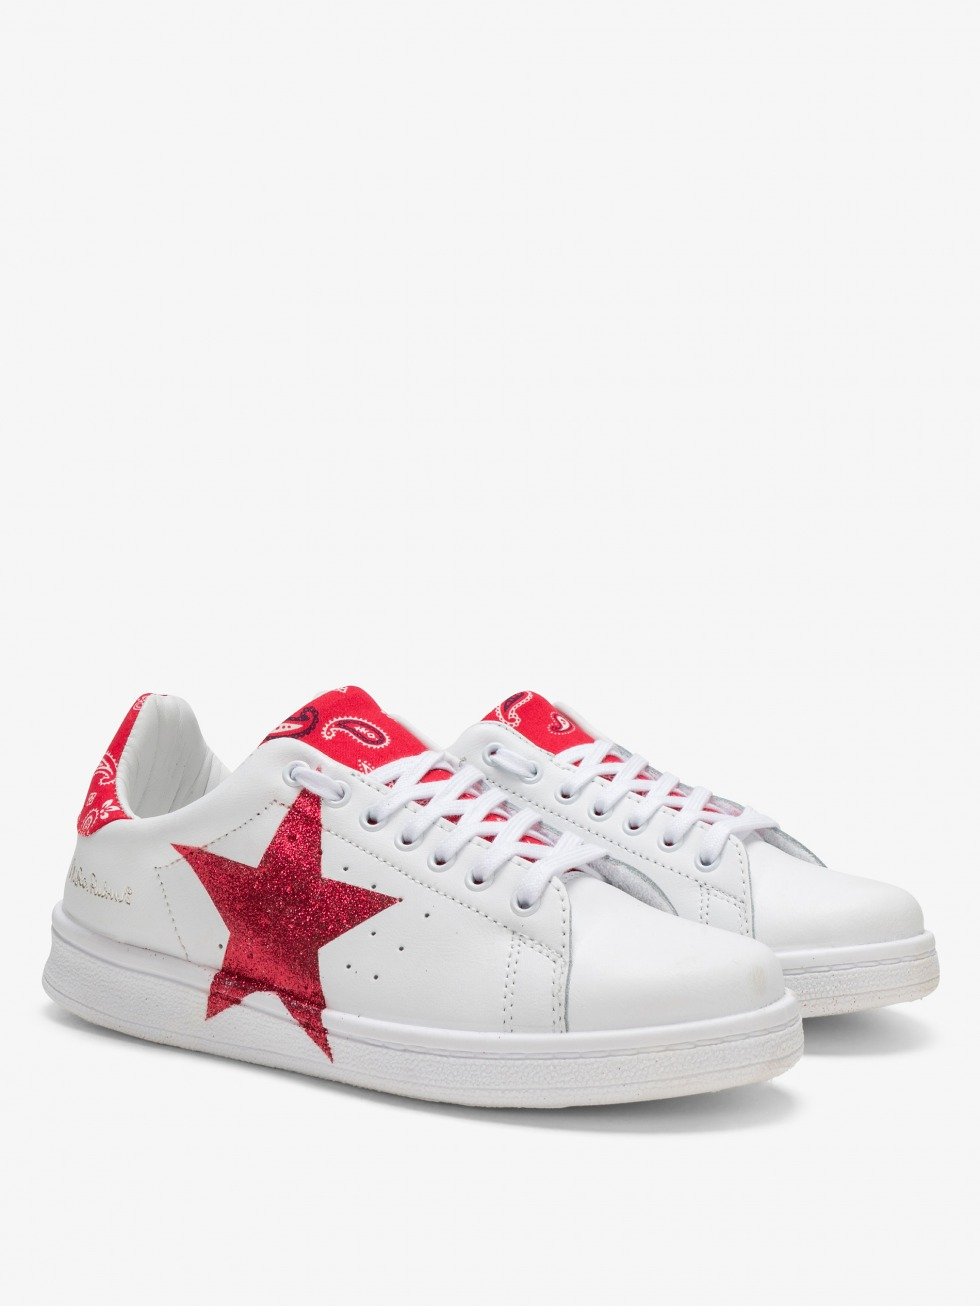 Daiquiri Sneakers - Red Rock Star